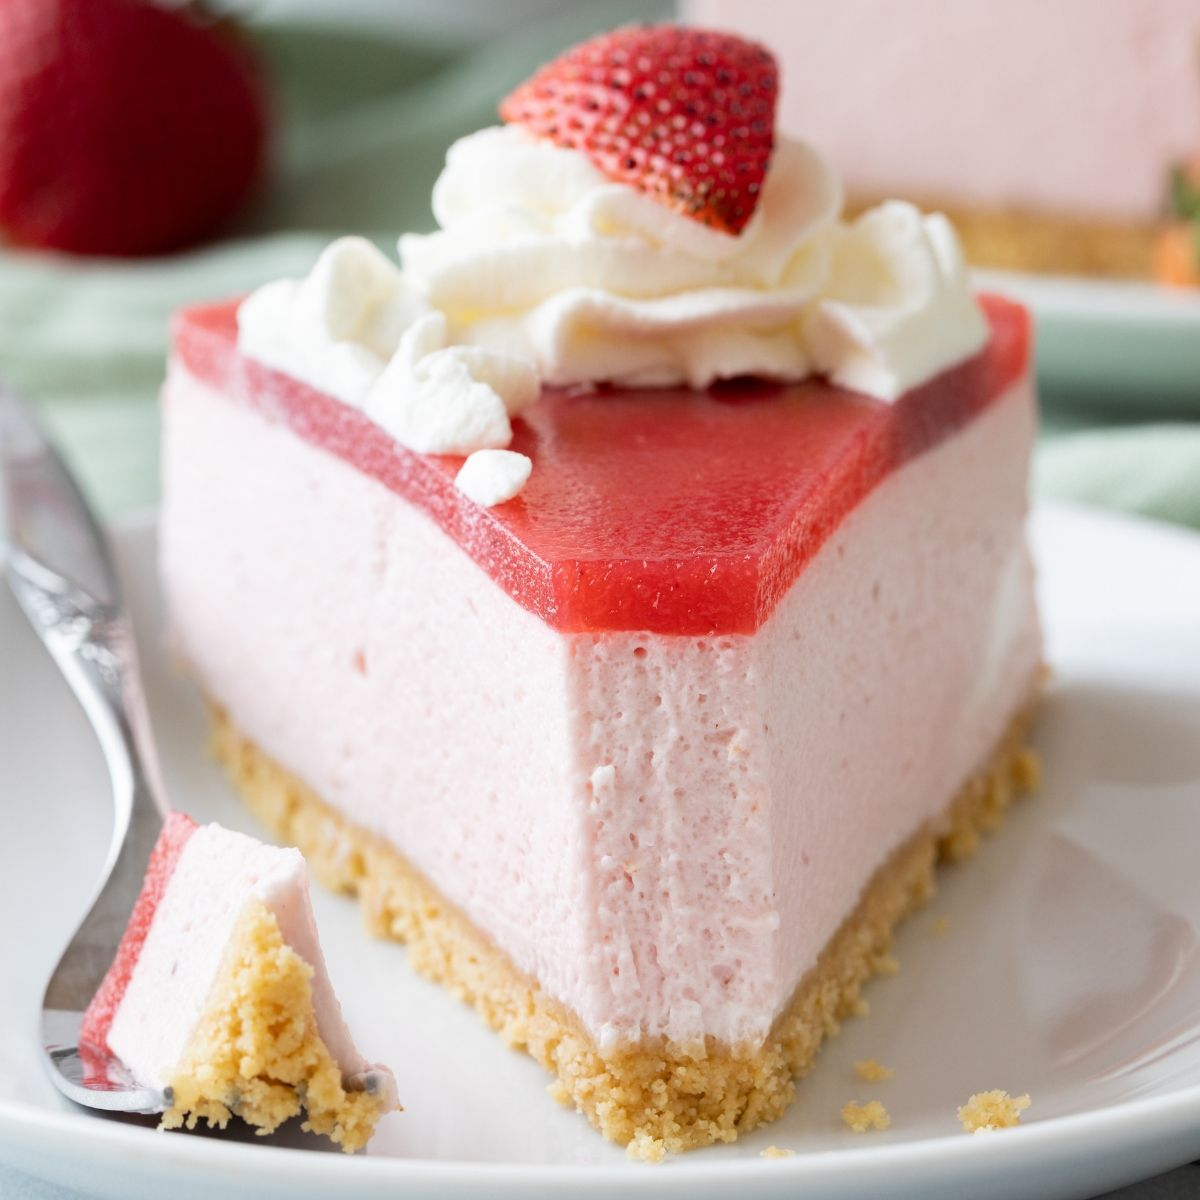 Strawberry Mousse Cake #redvelvetcheesecake